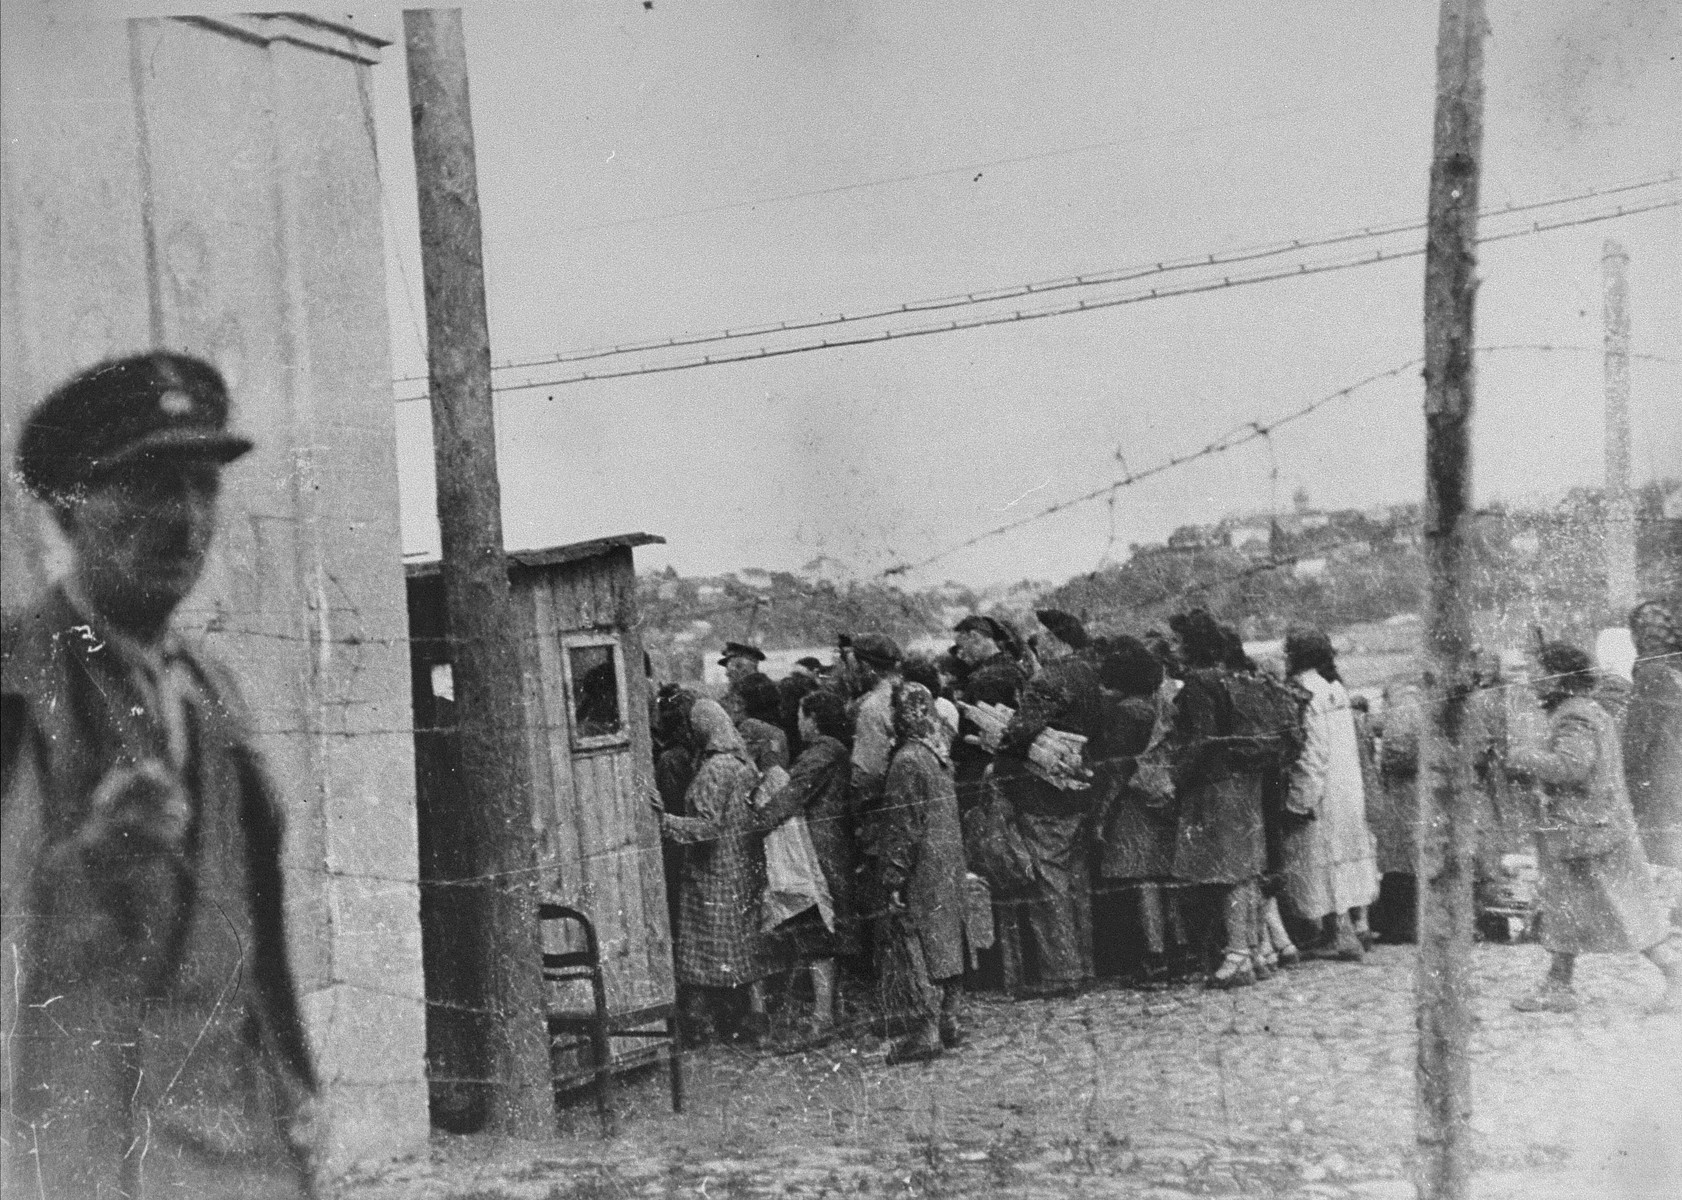 A group of Jews return to the ghetto after a day of forced labor on the outside. They line-up to be searched by German and Lithuanian guards.